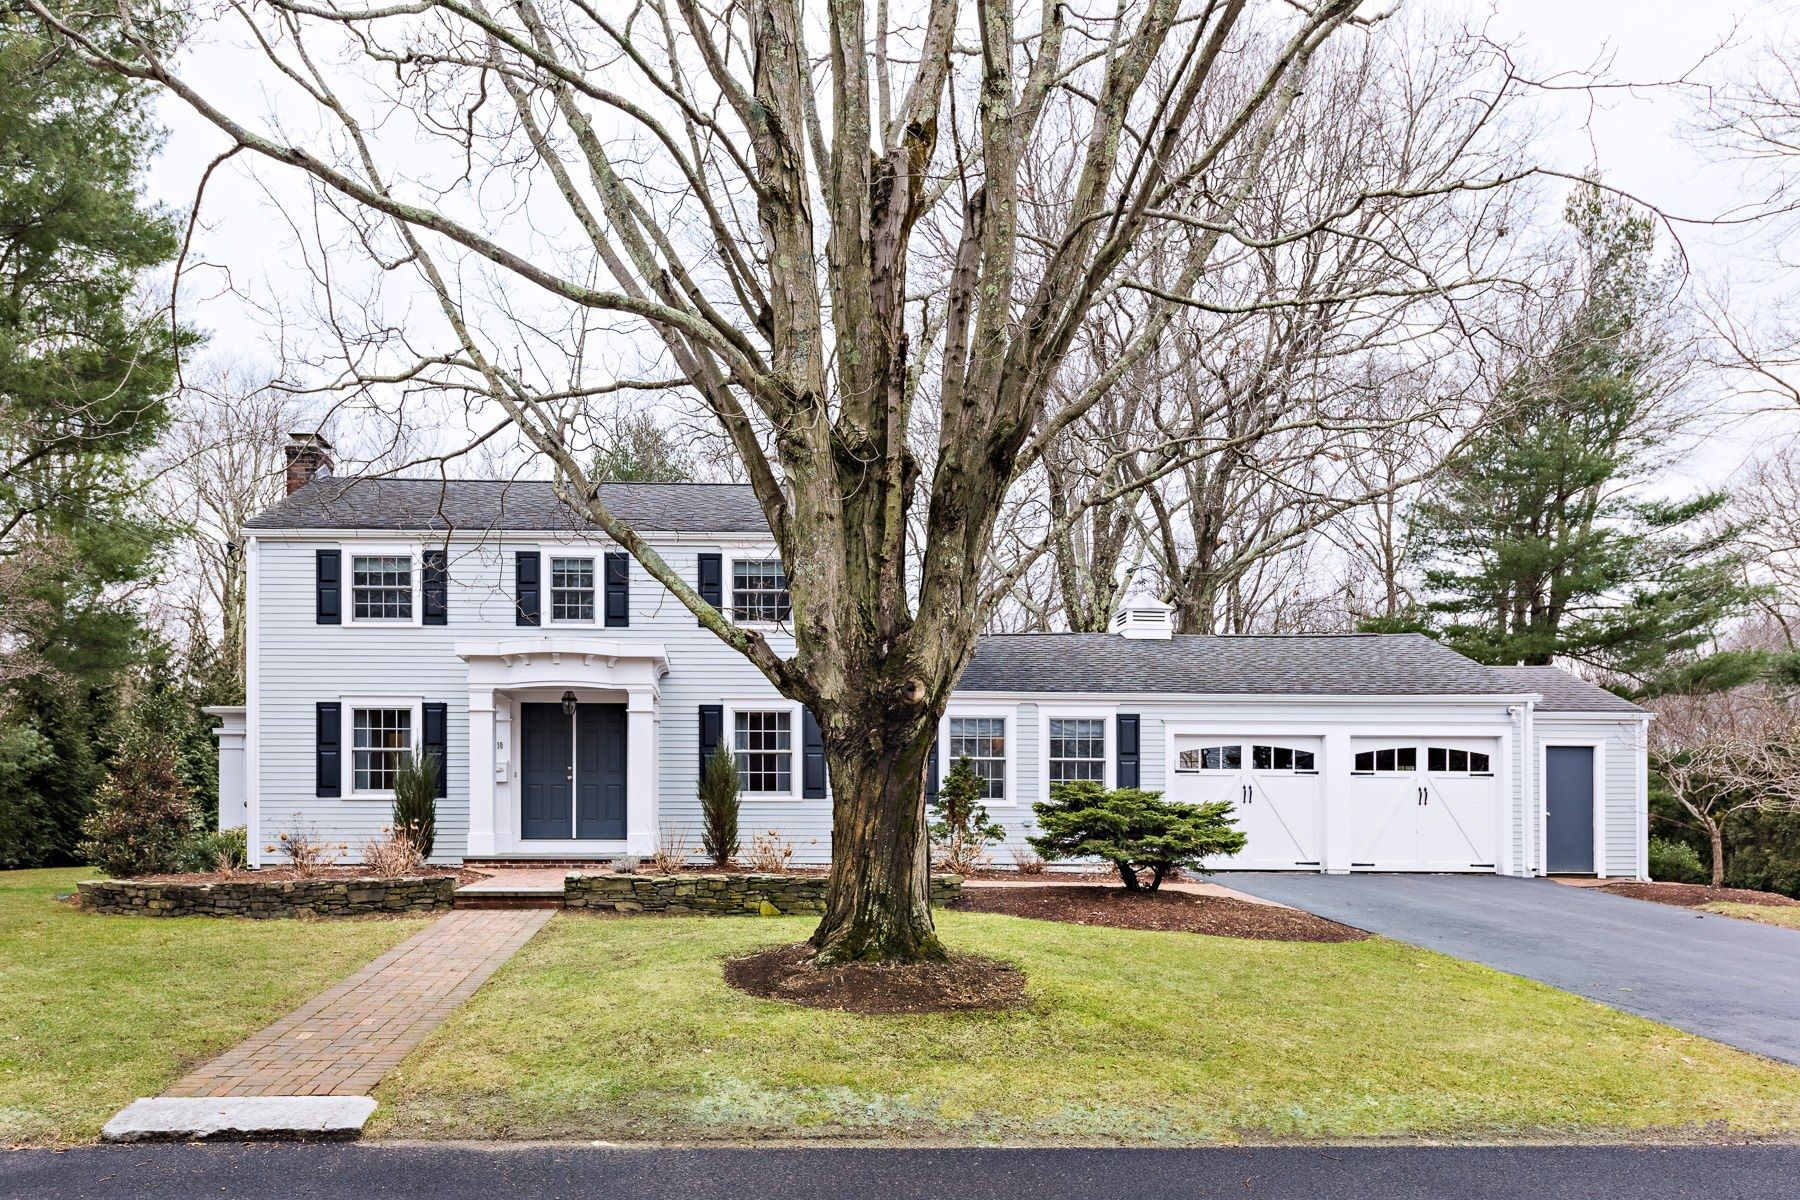 Single Family Home for Sale at 10 Glenfield Rd, Barrington, RI 10 Glenfield Rd Barrington, Rhode Island 02806 United States